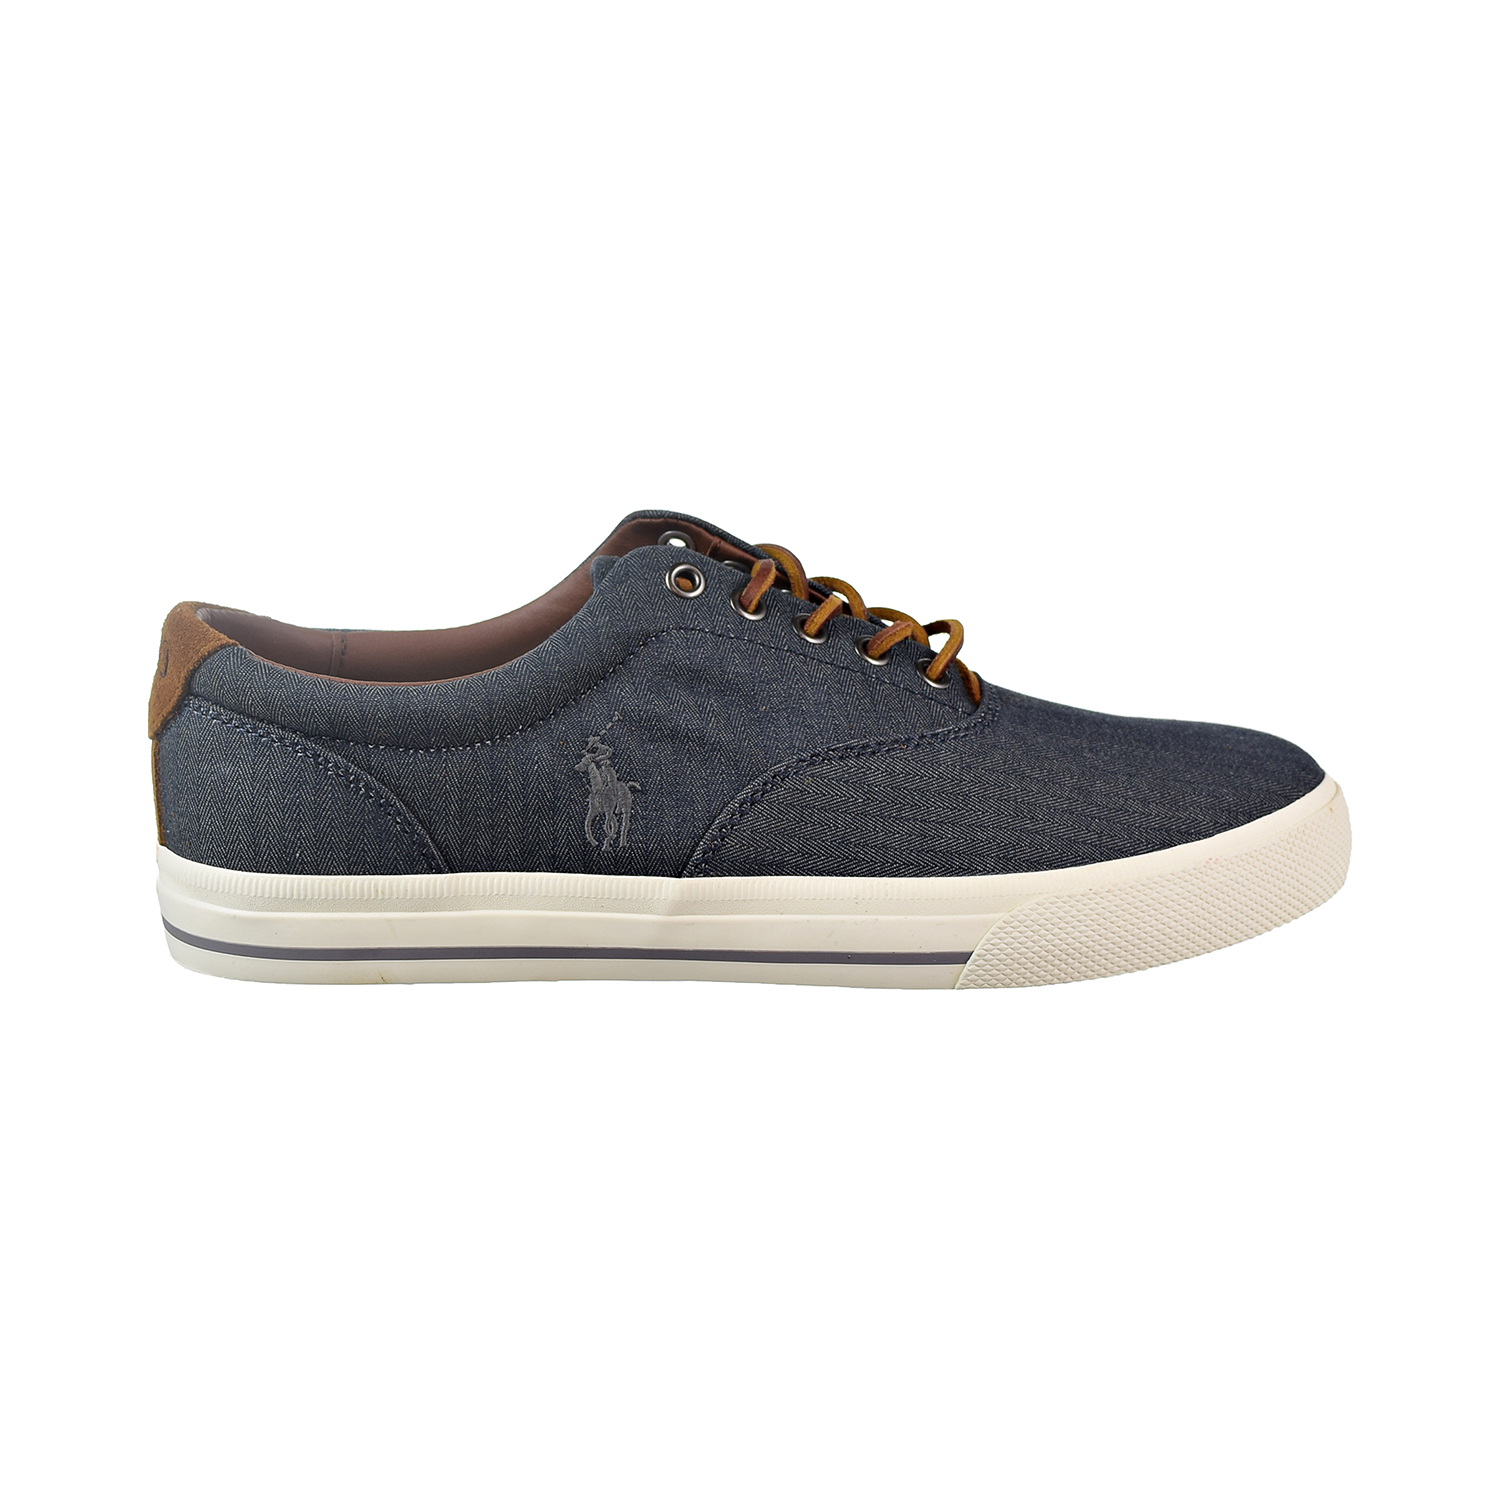 d1a44e8b5a Polo Ralph Lauren Vaughn Men's Shoes Denim 816564493-002 | eBay